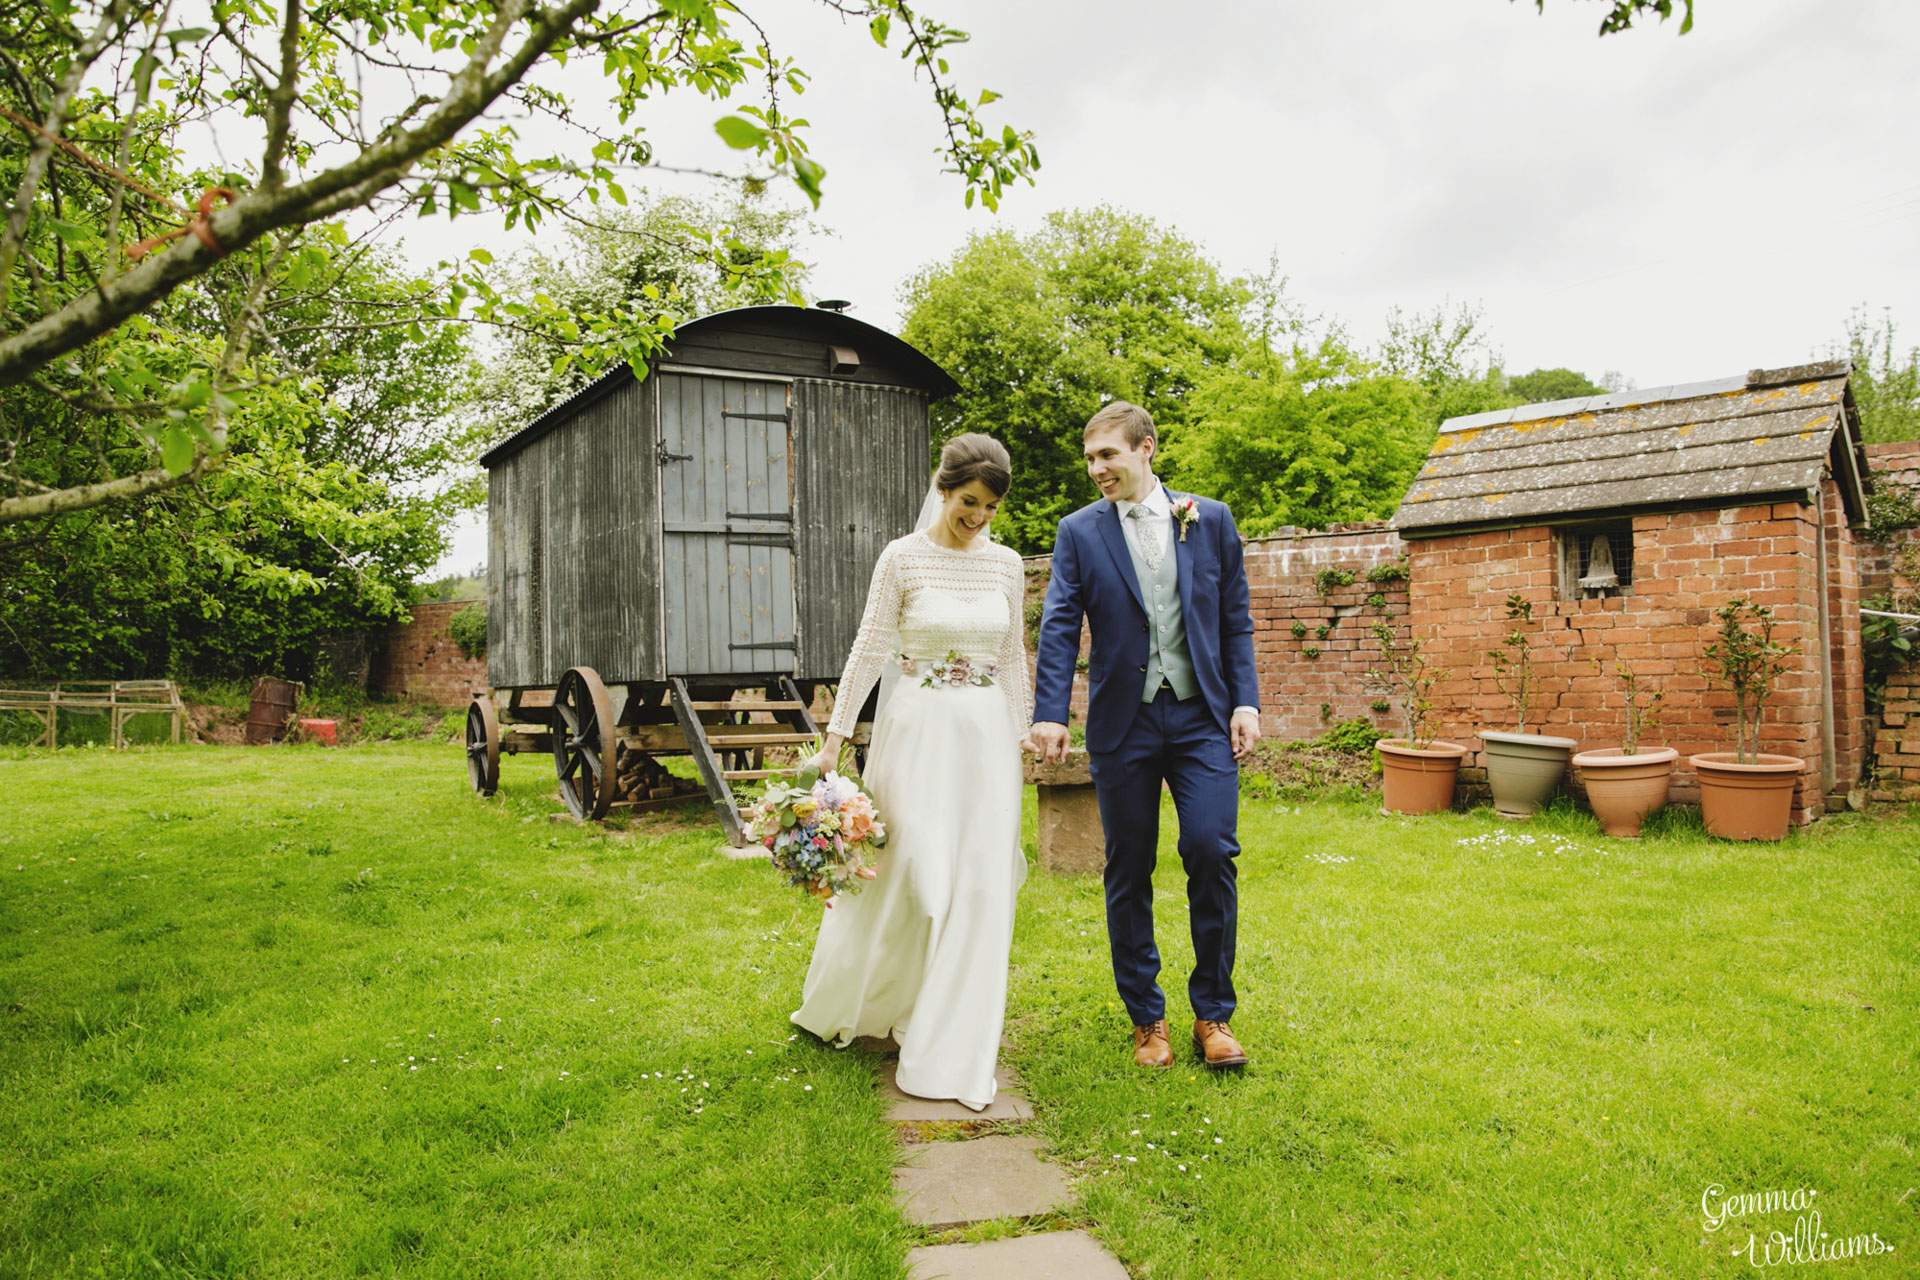 HaybarnWedding_GemmaWilliamsPhoto108.jpg